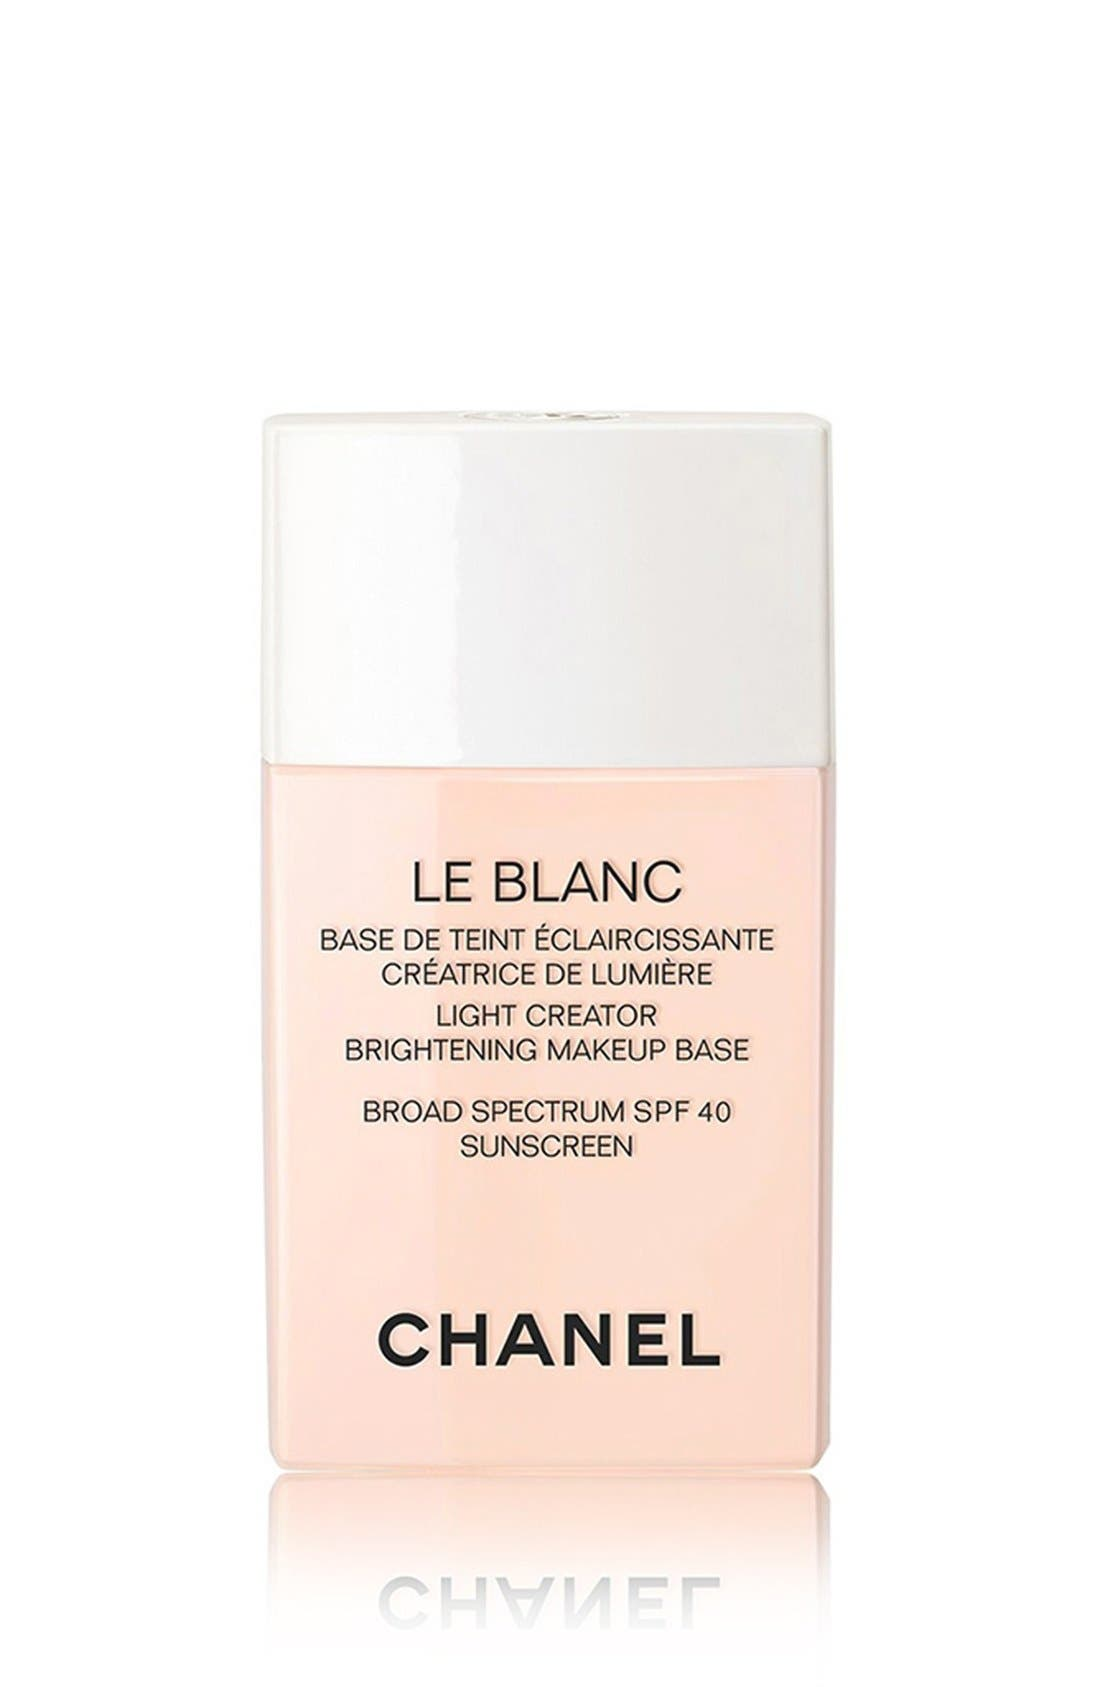 CHANEL LE BLANC LIGHT CREATOR<br />Brightening Makeup Base Broad Spectrum SPF 40 Sunscreen, Main, color, ROSE